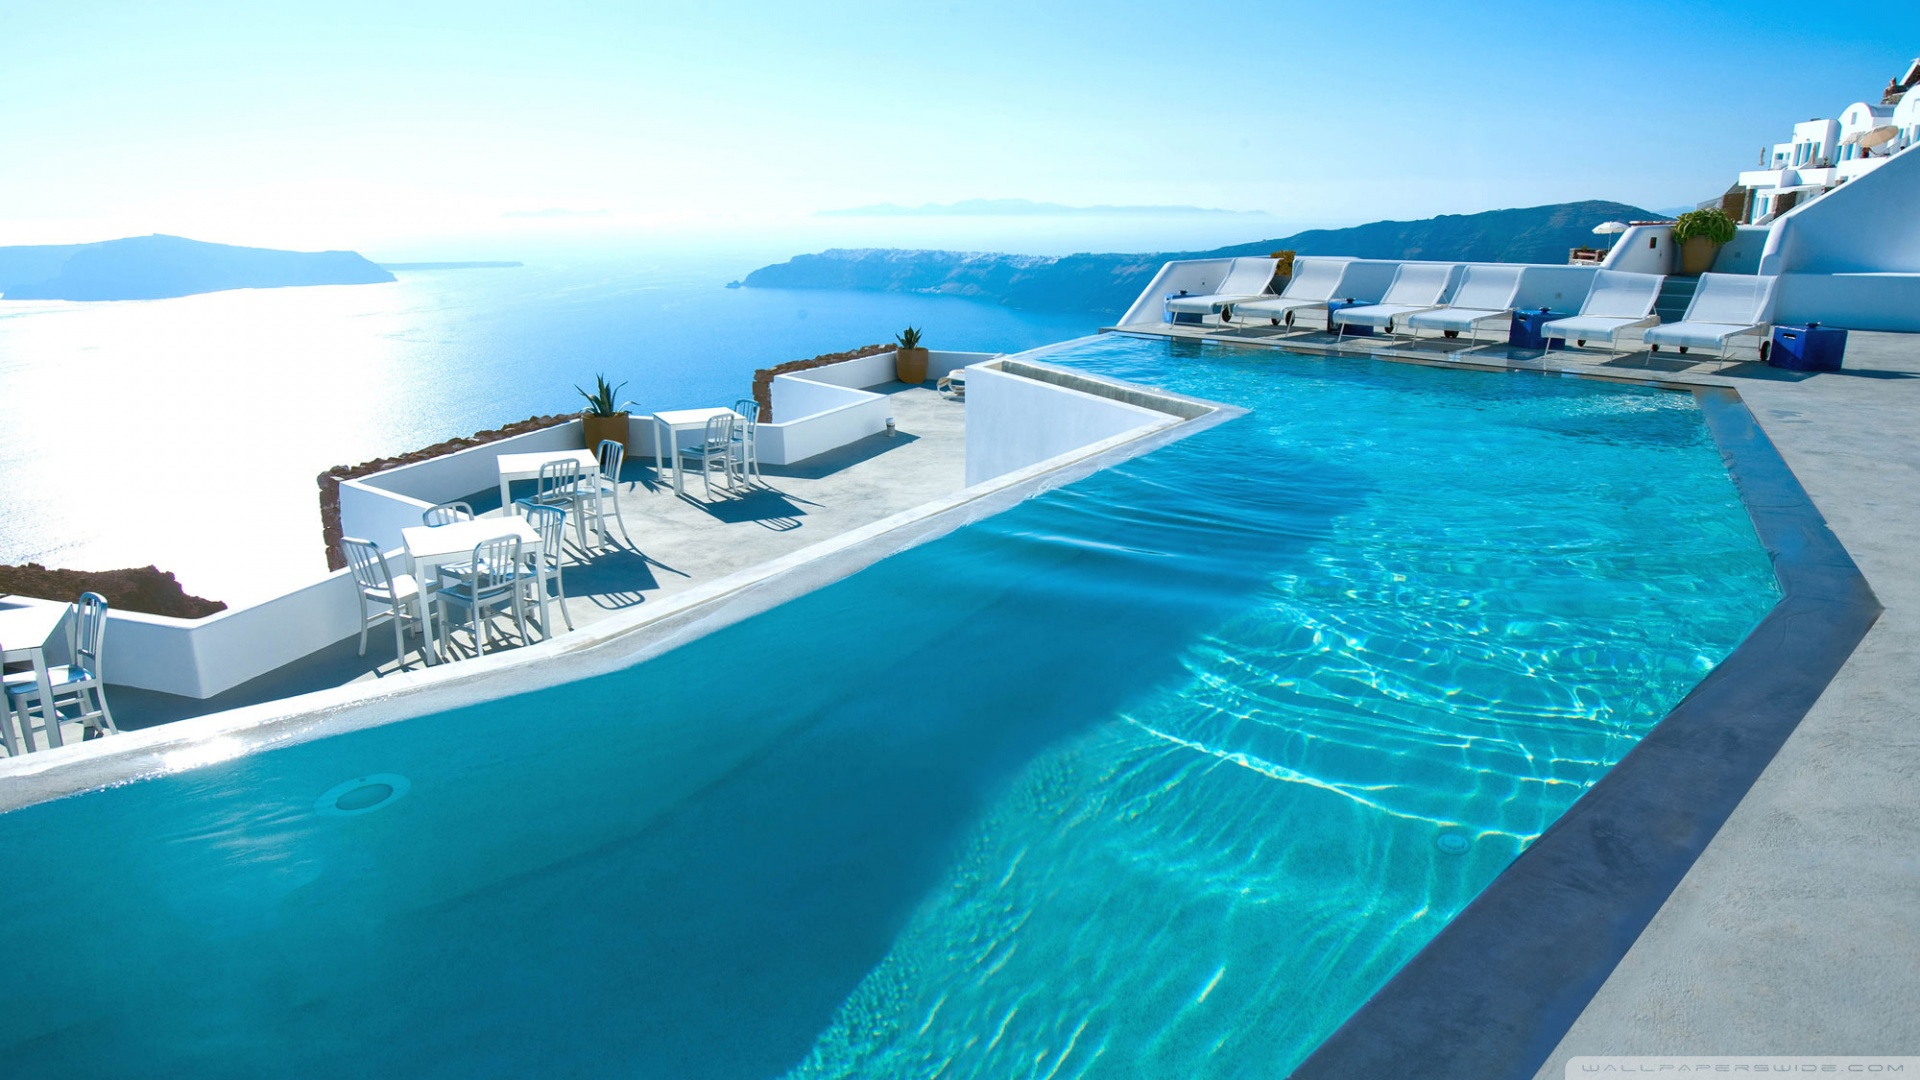 Santorini Hotels HD Wallpaper Background Images 1920x1080